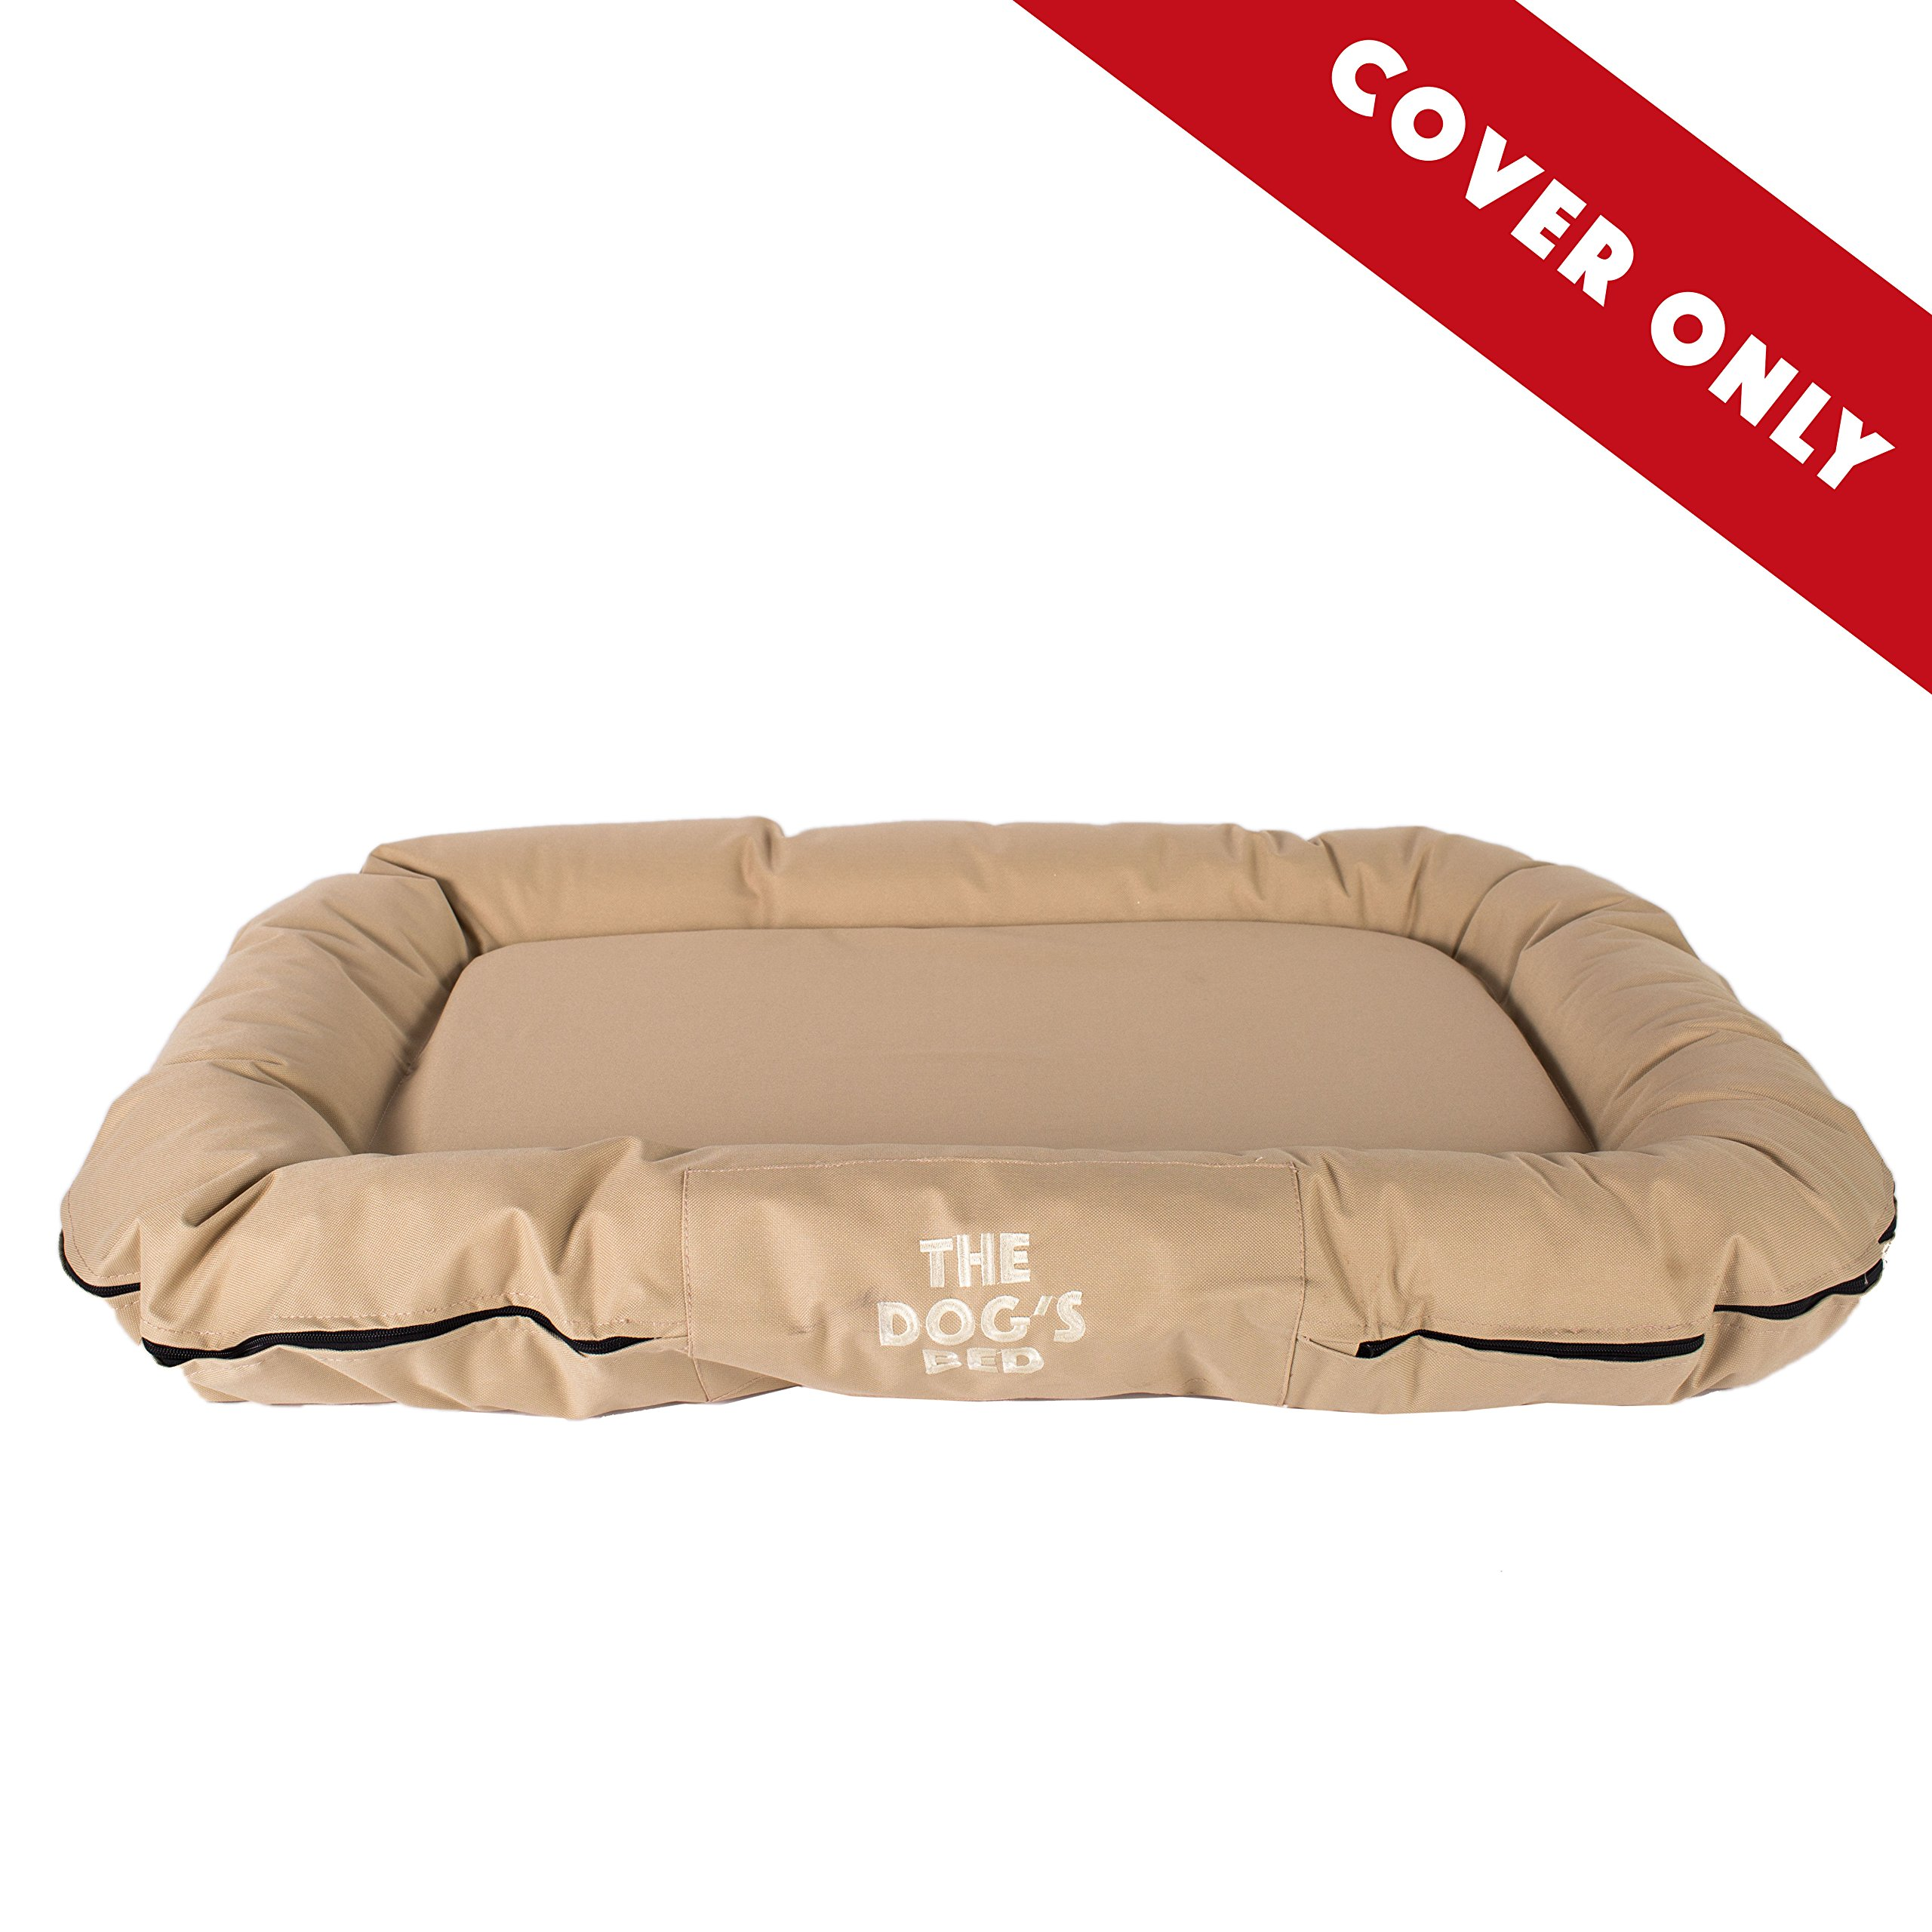 The Dog's Bed, Premium Quality Dog Bed, Water Resistant Durable Oxford Fabric Designed for Comfort, Washable Cover, Boarding Kennel Favorite